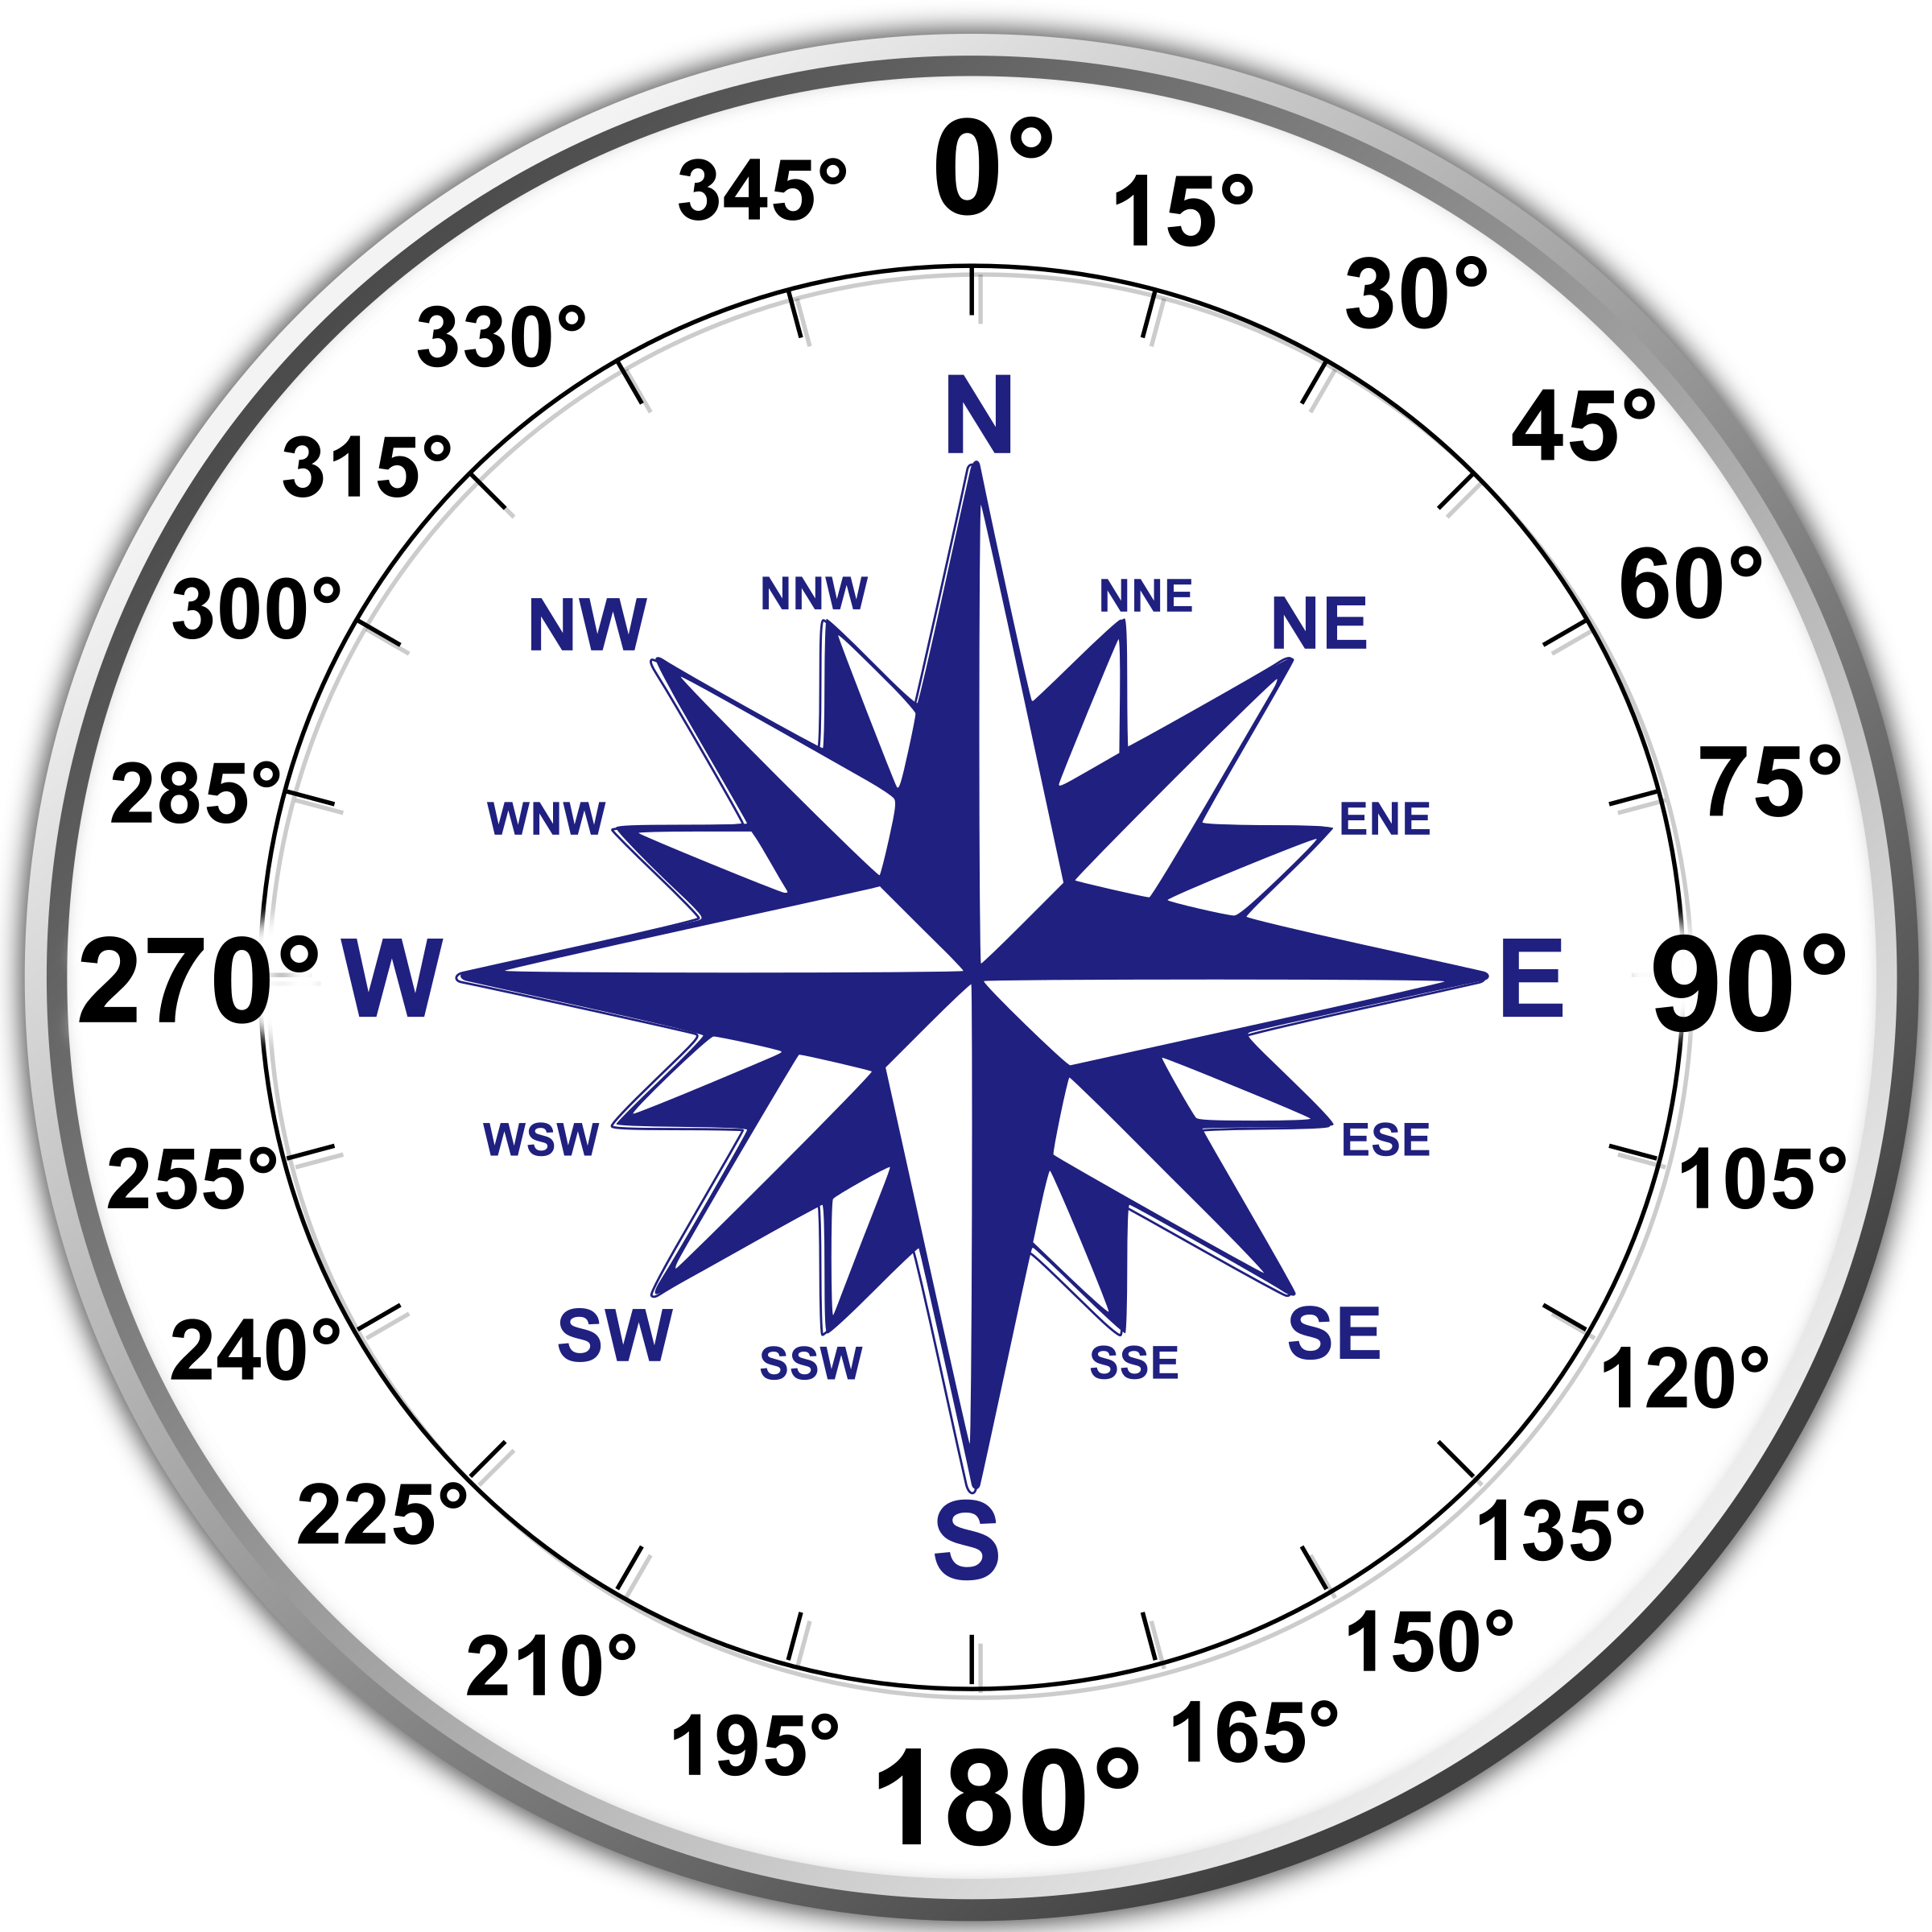 Dual Compass Rose by Rfc1394